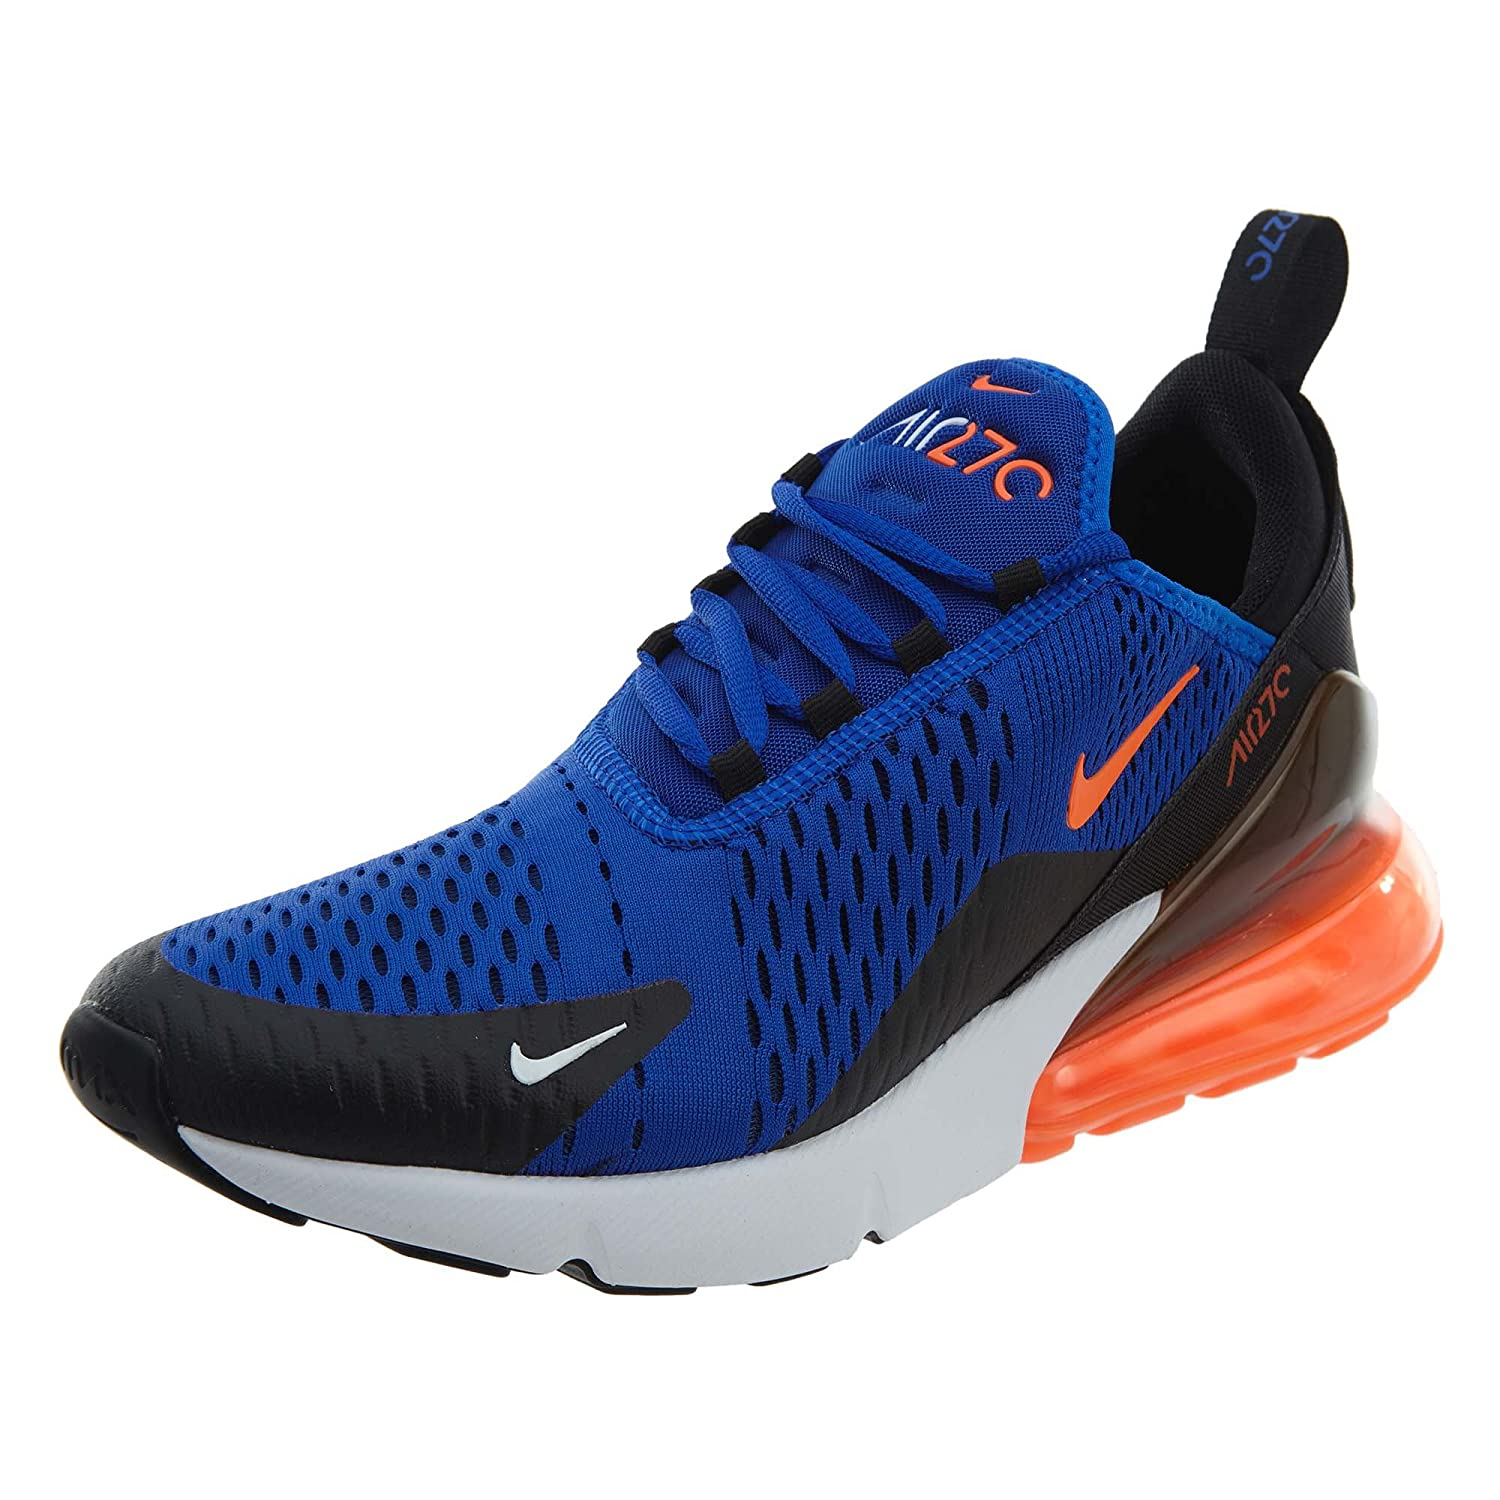 725efa7c2f Nike AIR MAX 270 - AH8050-401: Amazon.ca: Shoes & Handbags